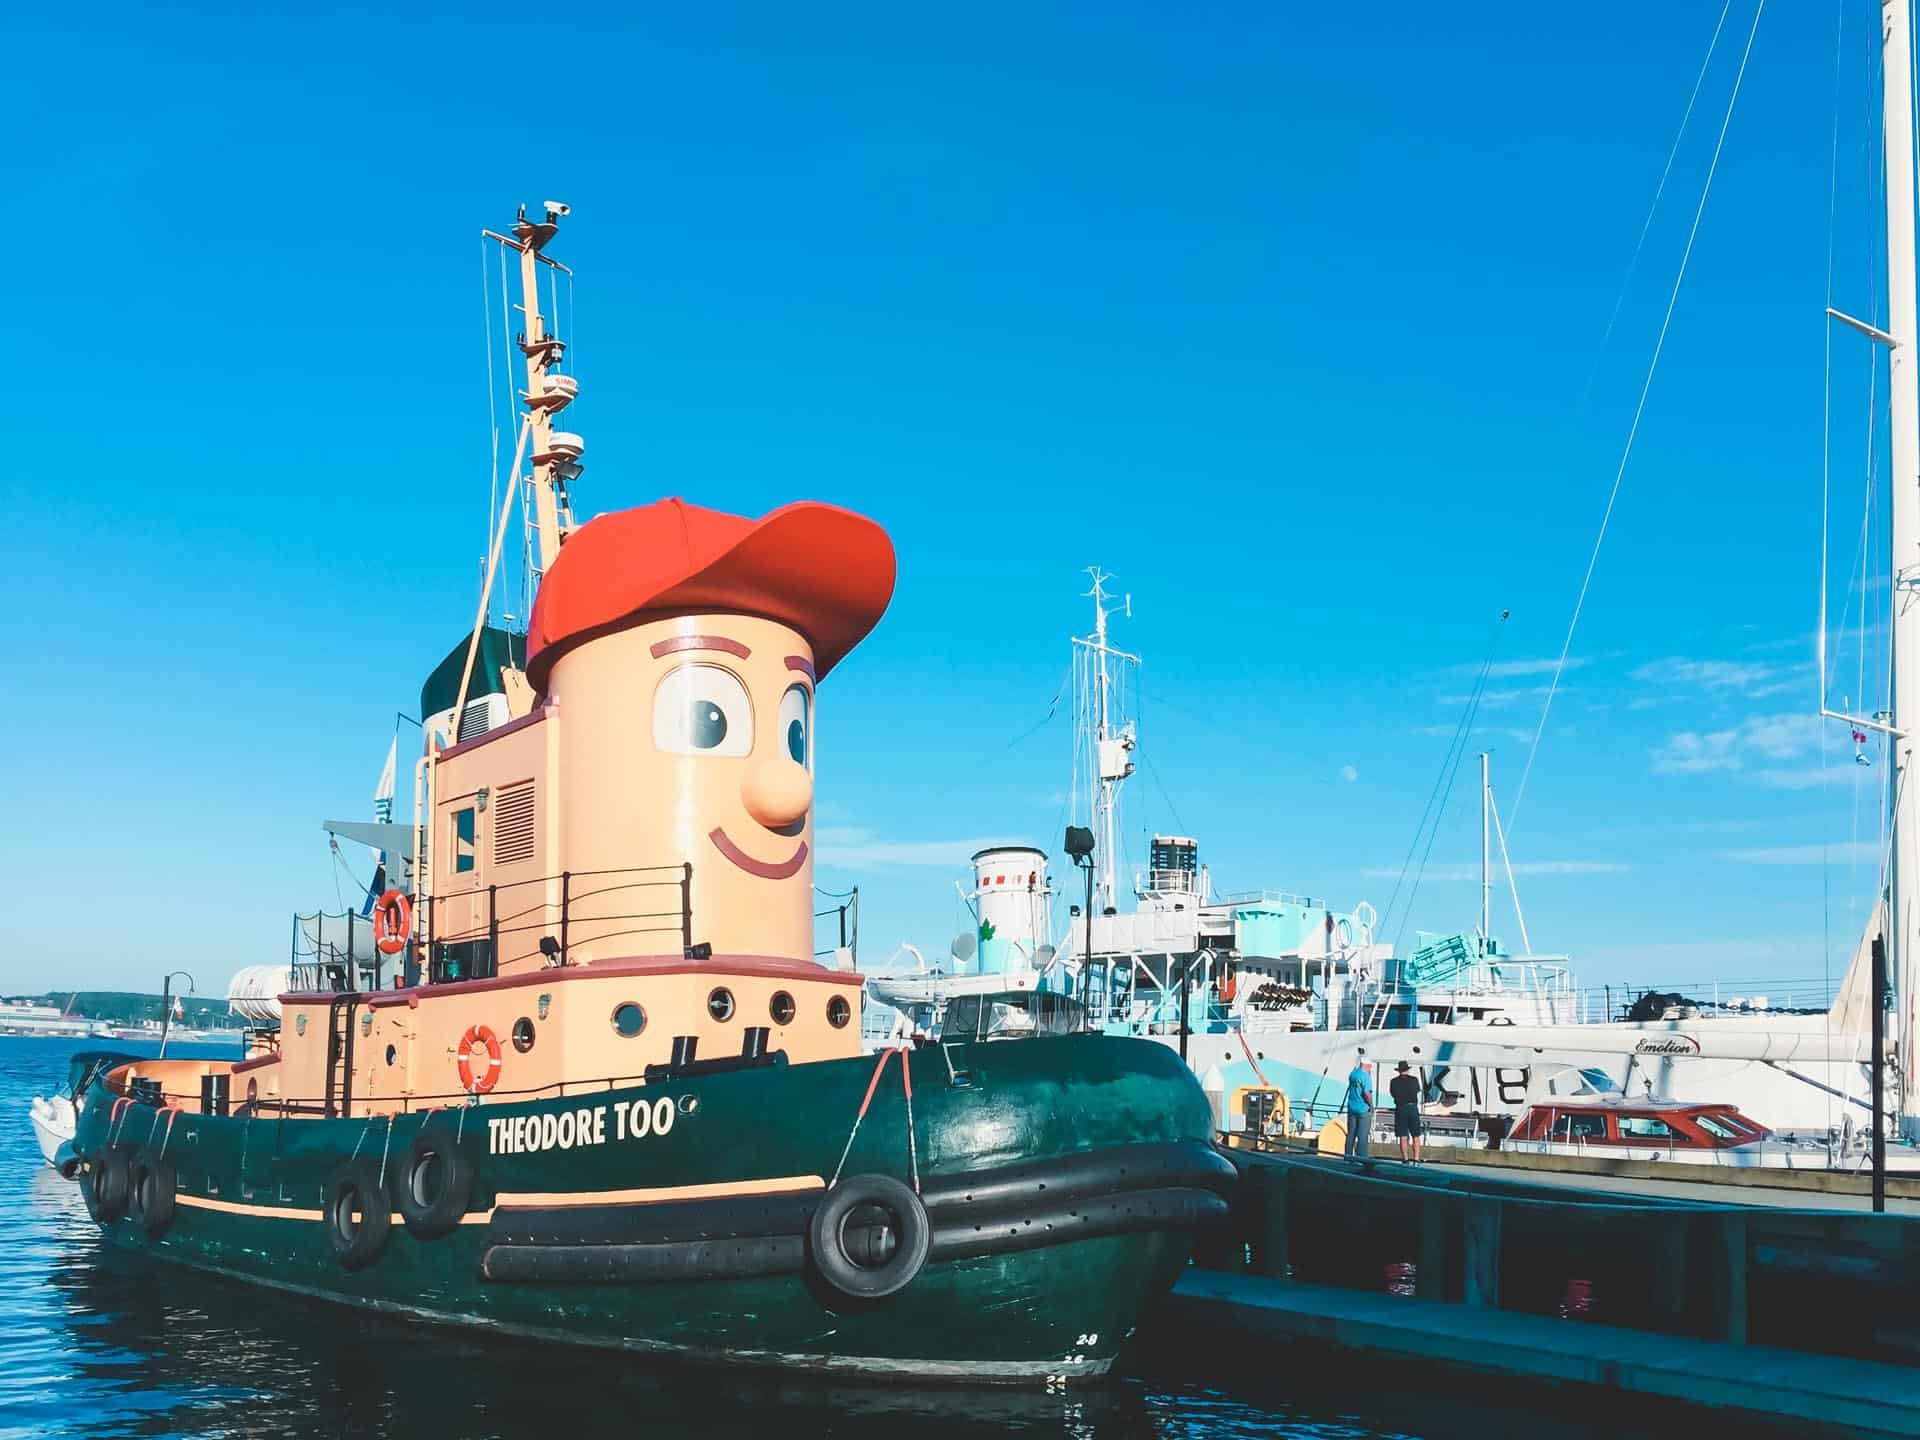 theadore tugboat halifax